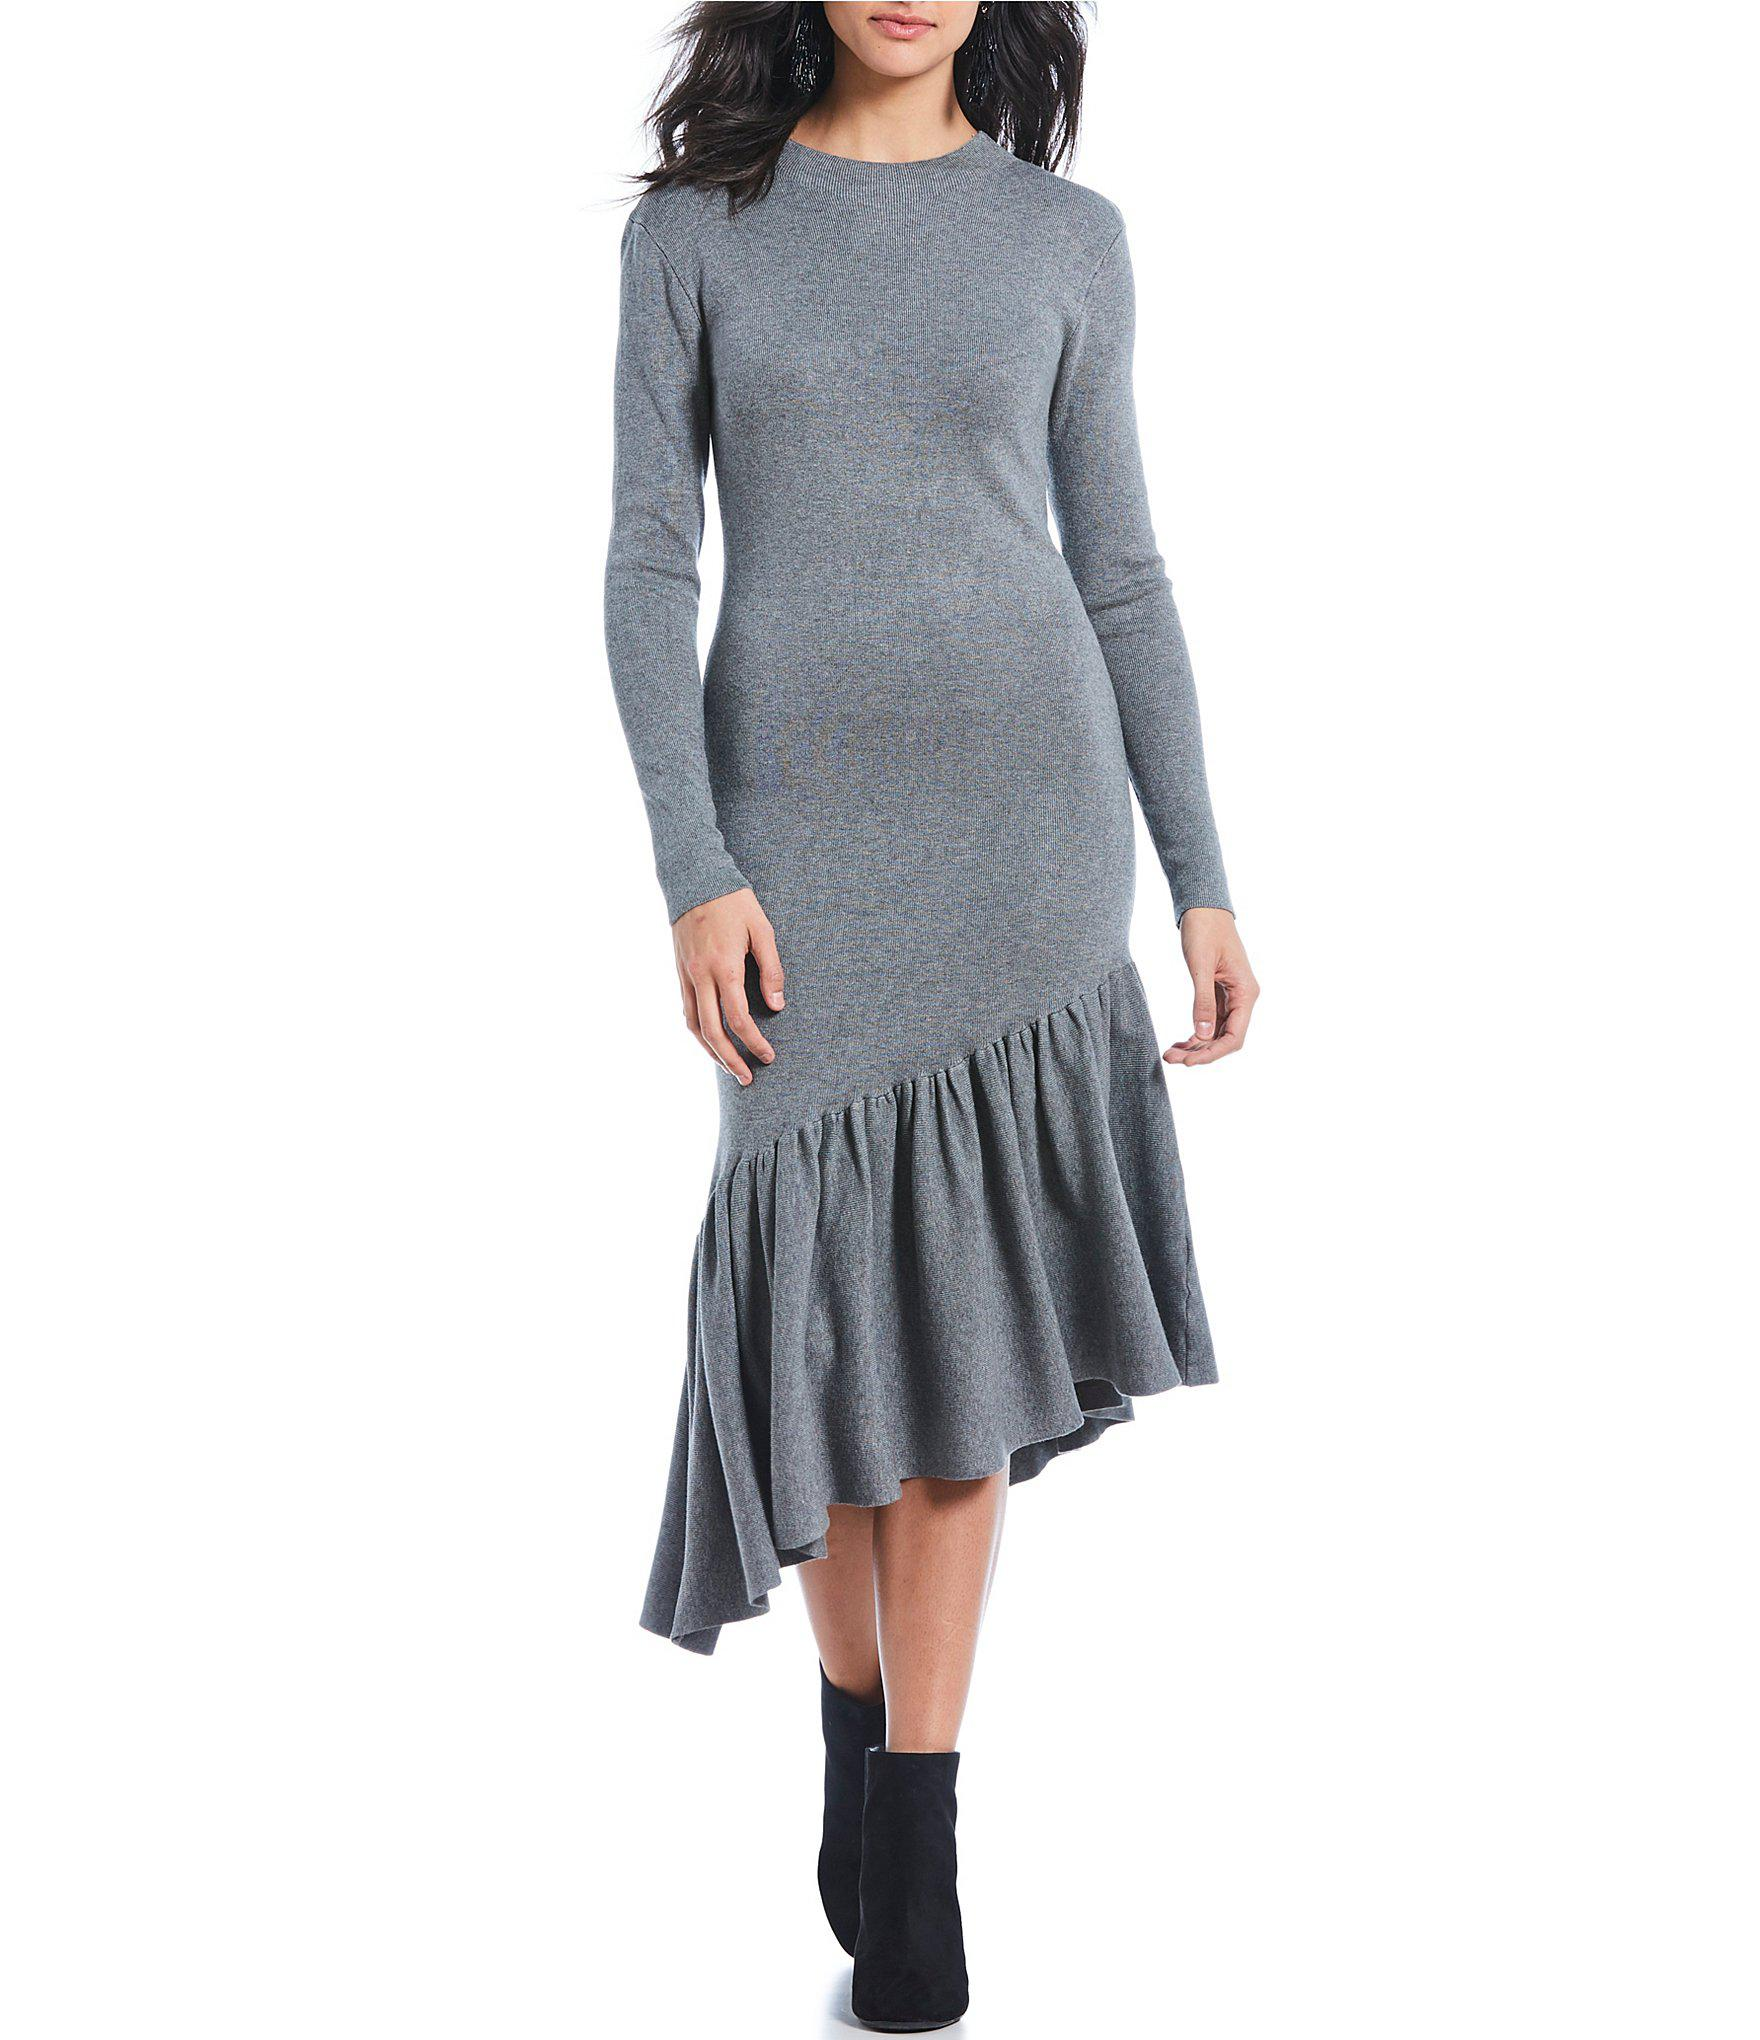 26cbf4caf0f Lyst - Gianni Bini Rosalee Knit Asymmetrical Hem Sweater Midi Dress ...